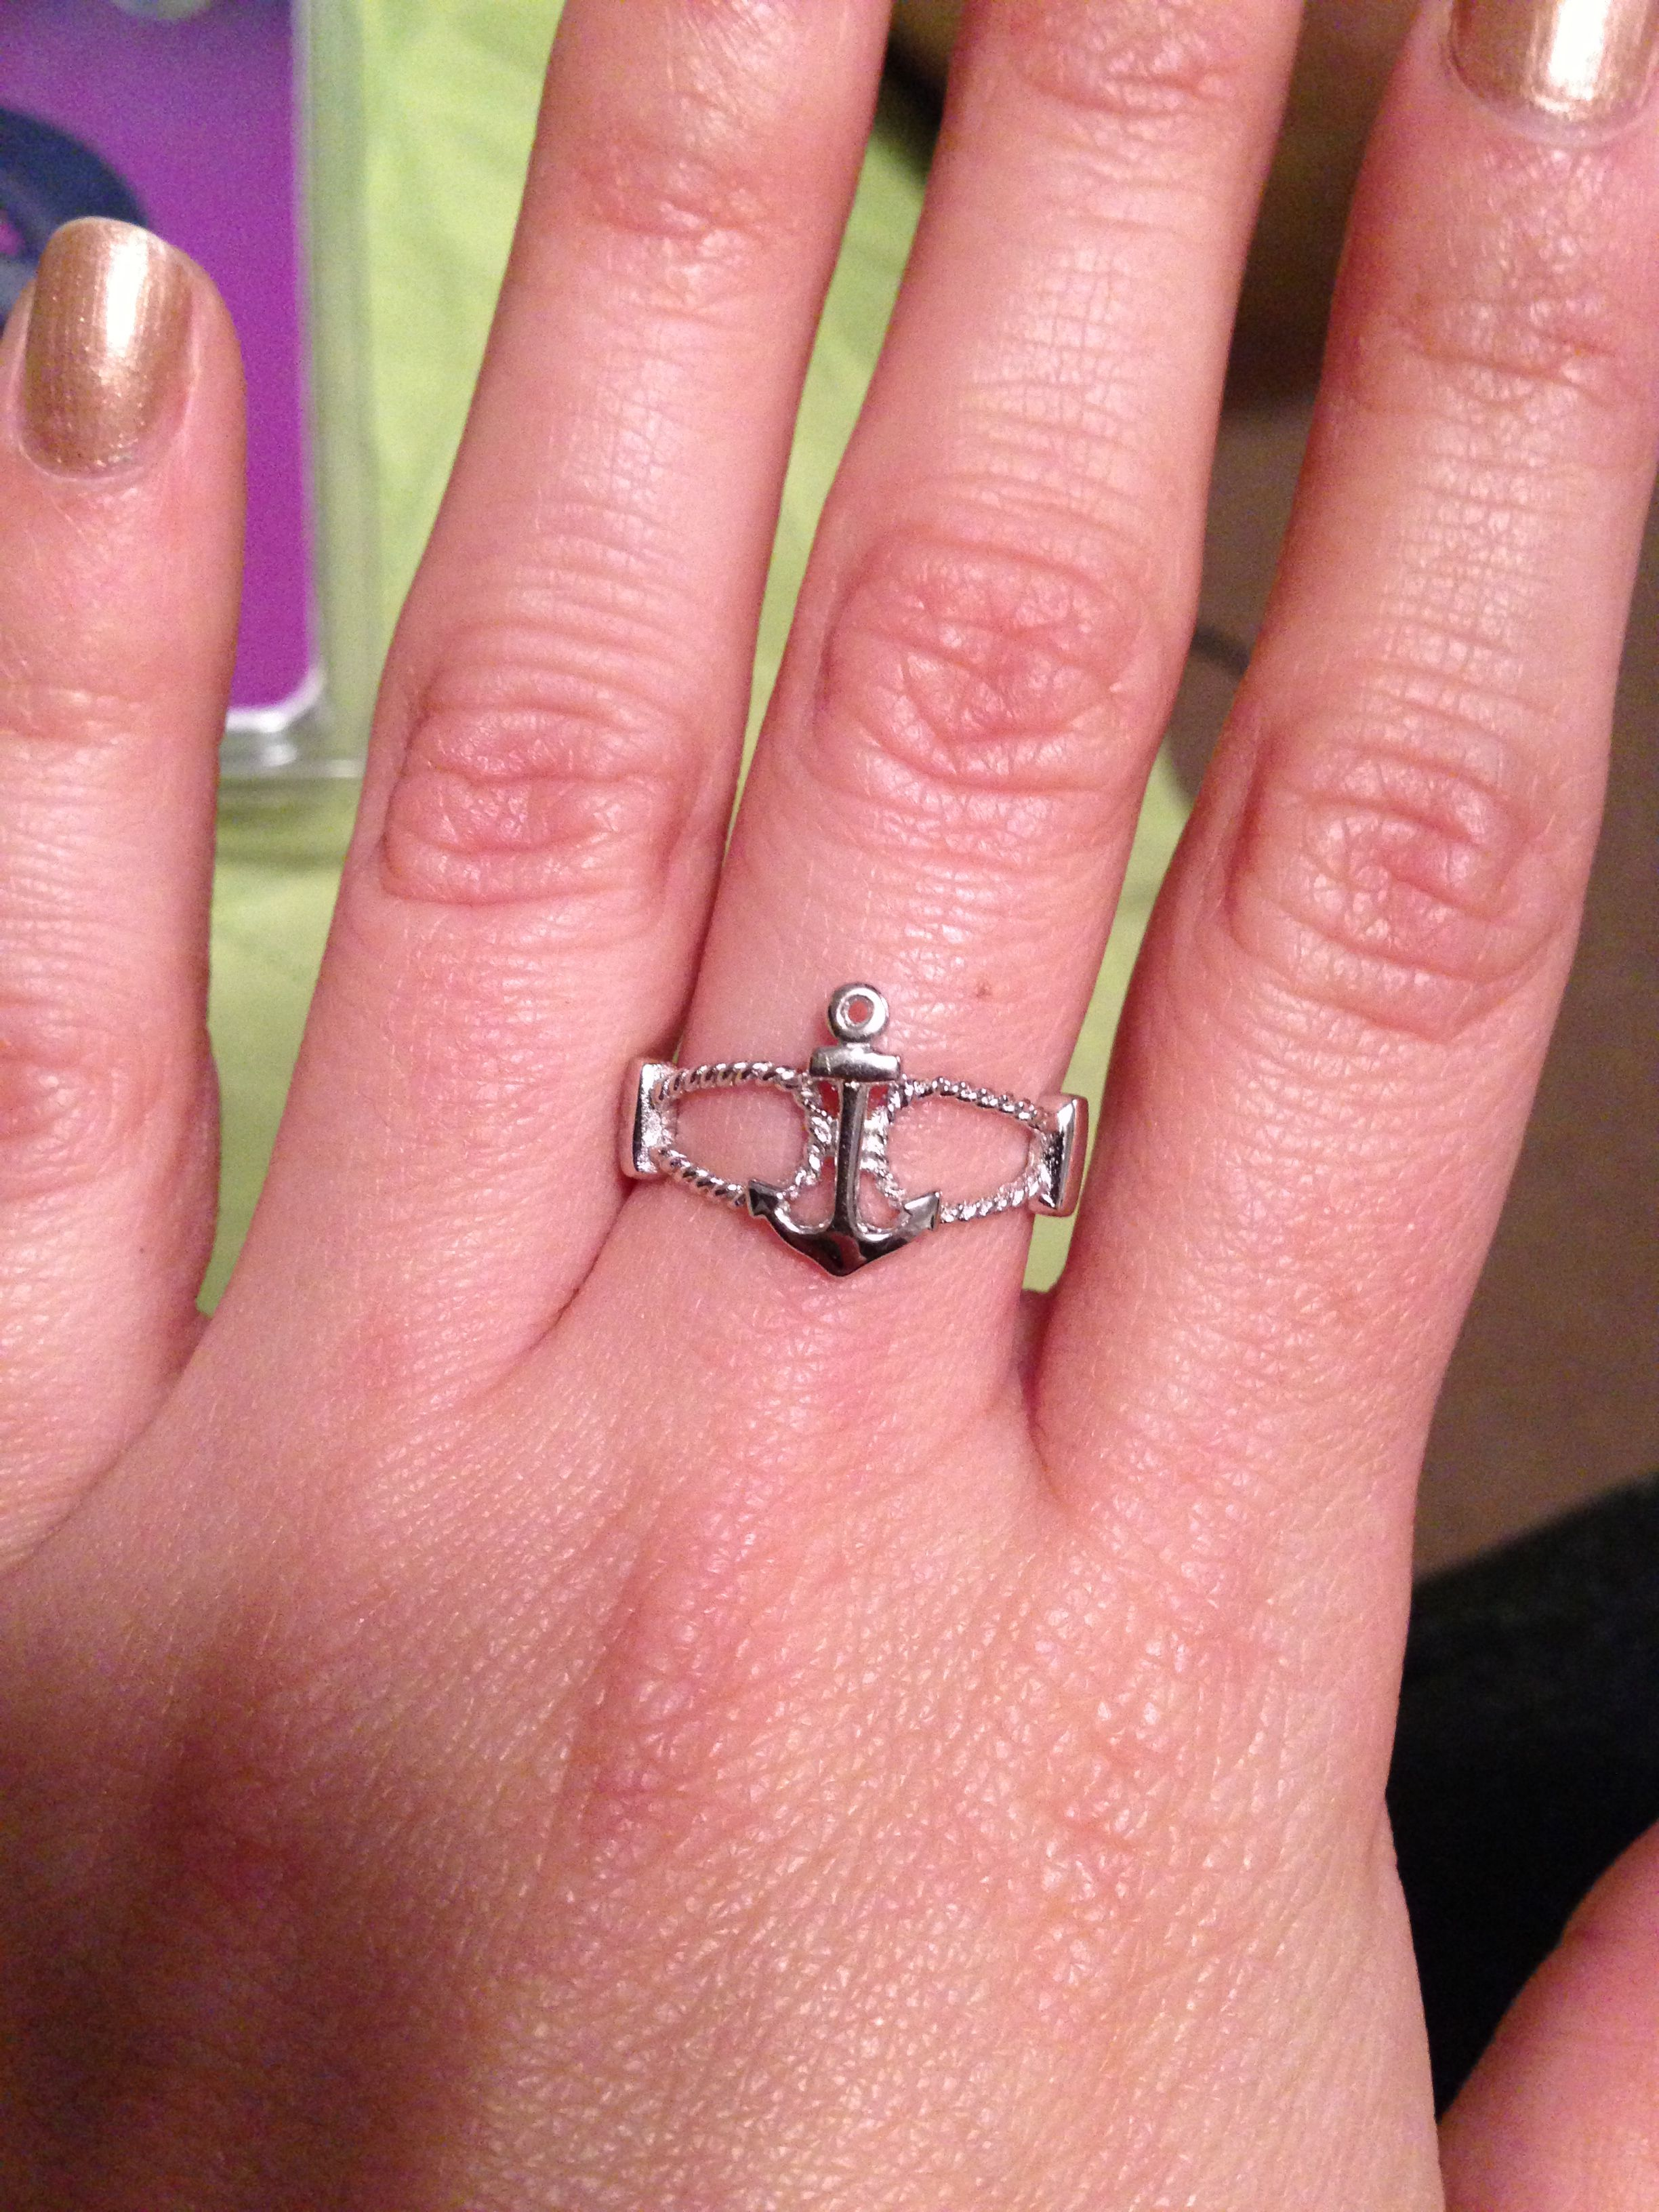 Anchor ring from my bf :) | jewelry | Pinterest | Anchor rings and Ring